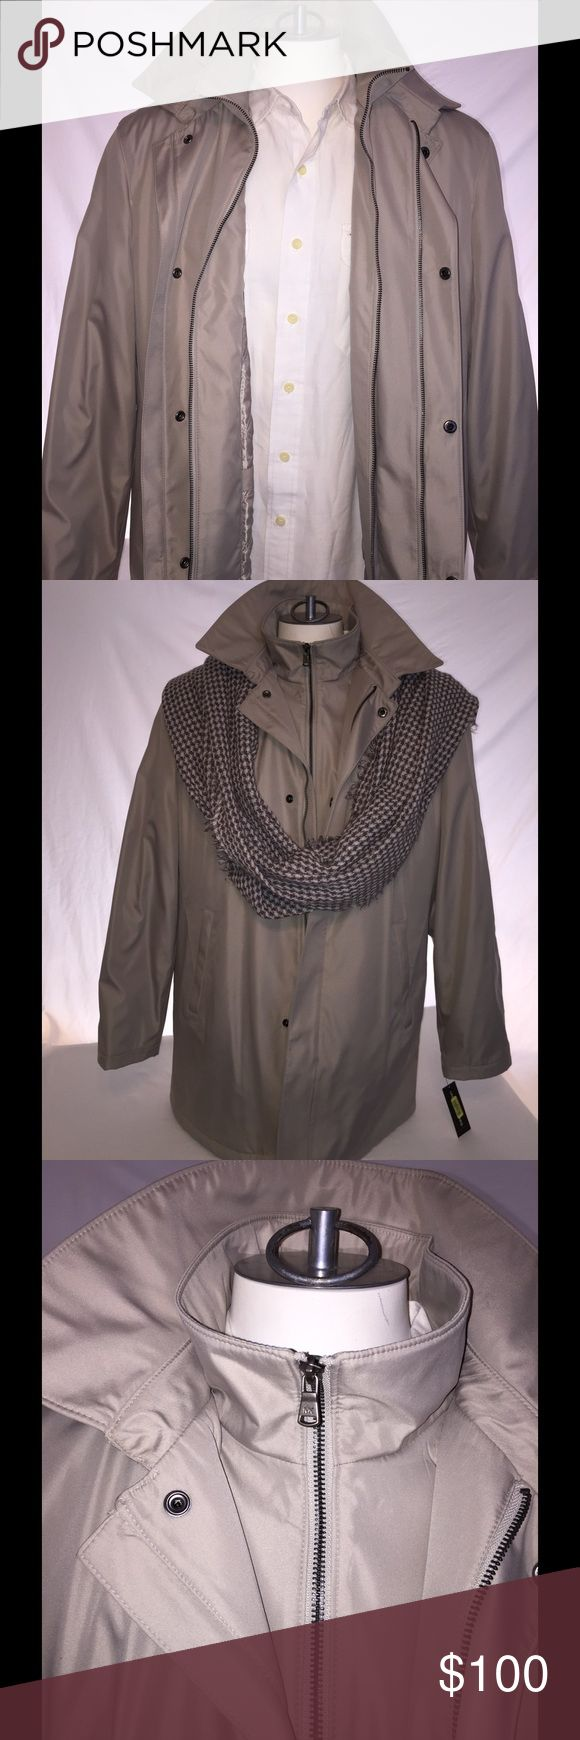 Michael Kors Men's Jacket Double lined & Zippered NWT. Great for wet weather - water repellant and has quilted lining. Michael Kors Jackets & Coats Trench Coats